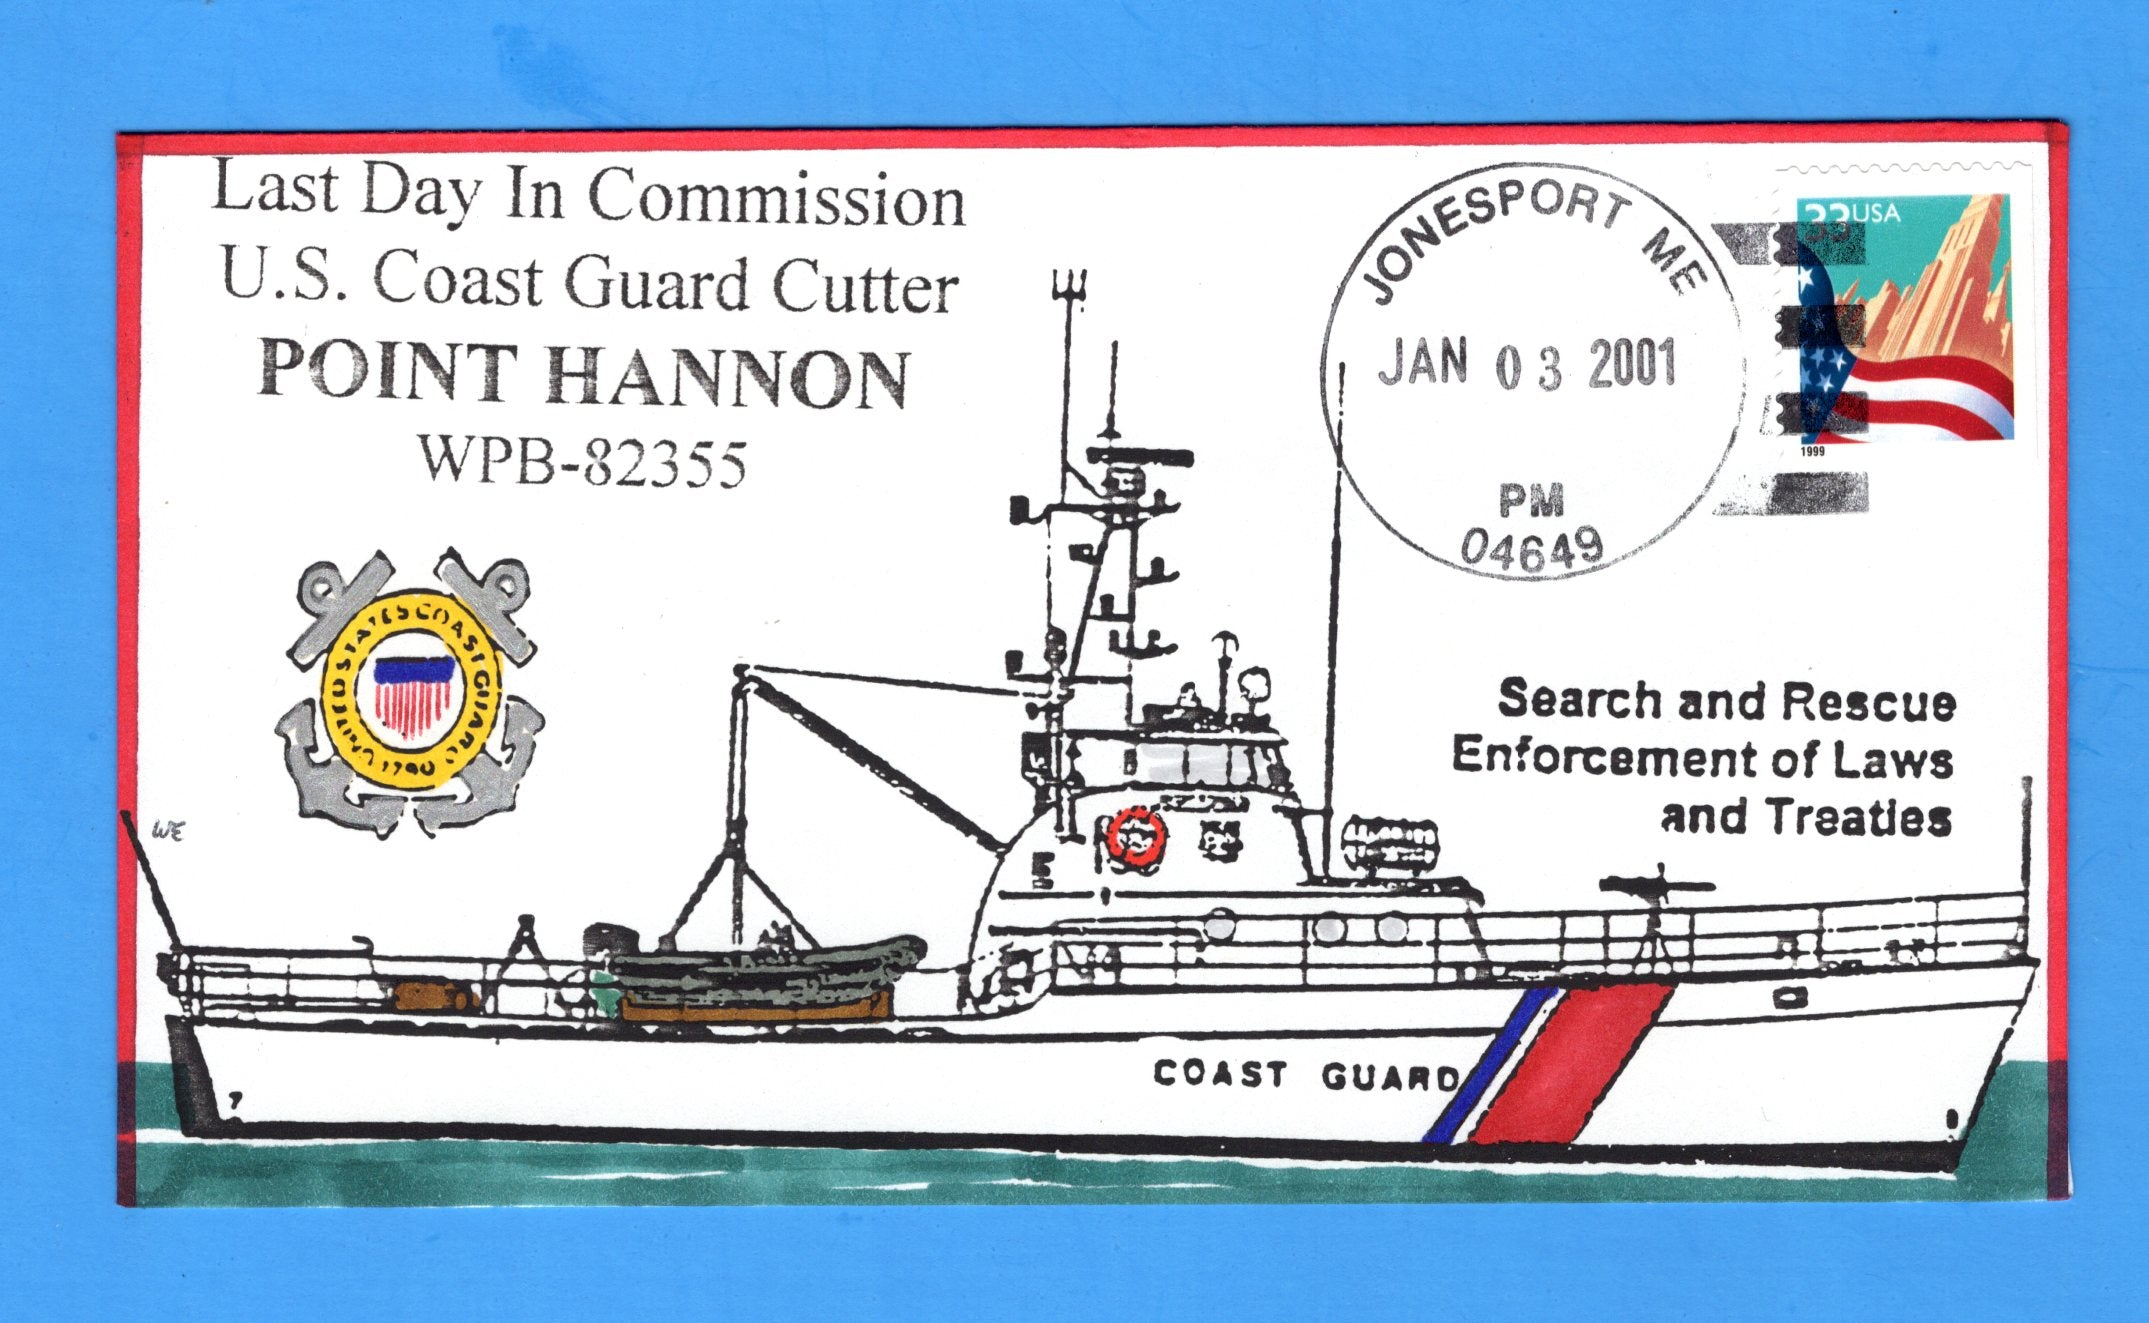 USCGC Point Hannon WPB-82355 Last Day in Commission January 3, 2001 - Hand Drawn and Colored Cachet by Bill Everett